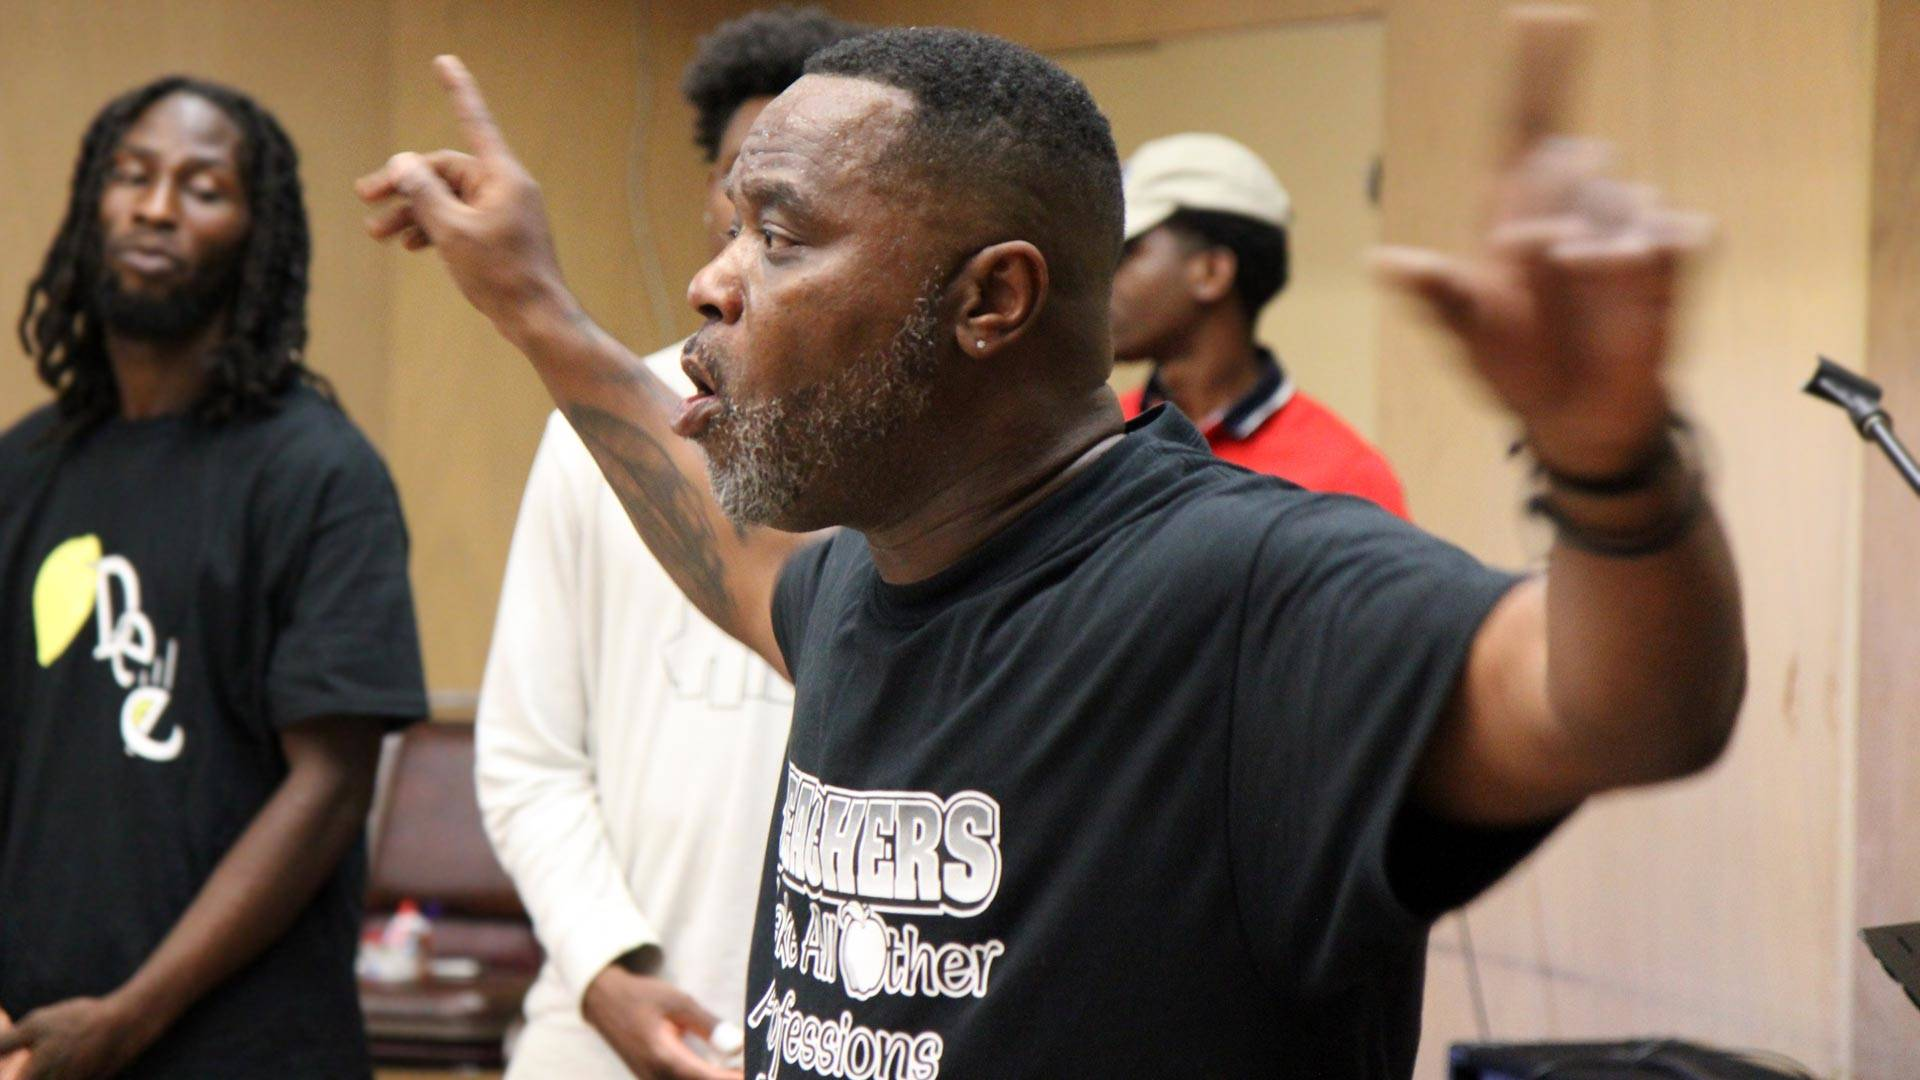 Eric Butler, who practices restorative justice at an Oakland school, is featured in the new documentary 'Circles.' Courtesy Cassidy Friedman/Stories Matter Media